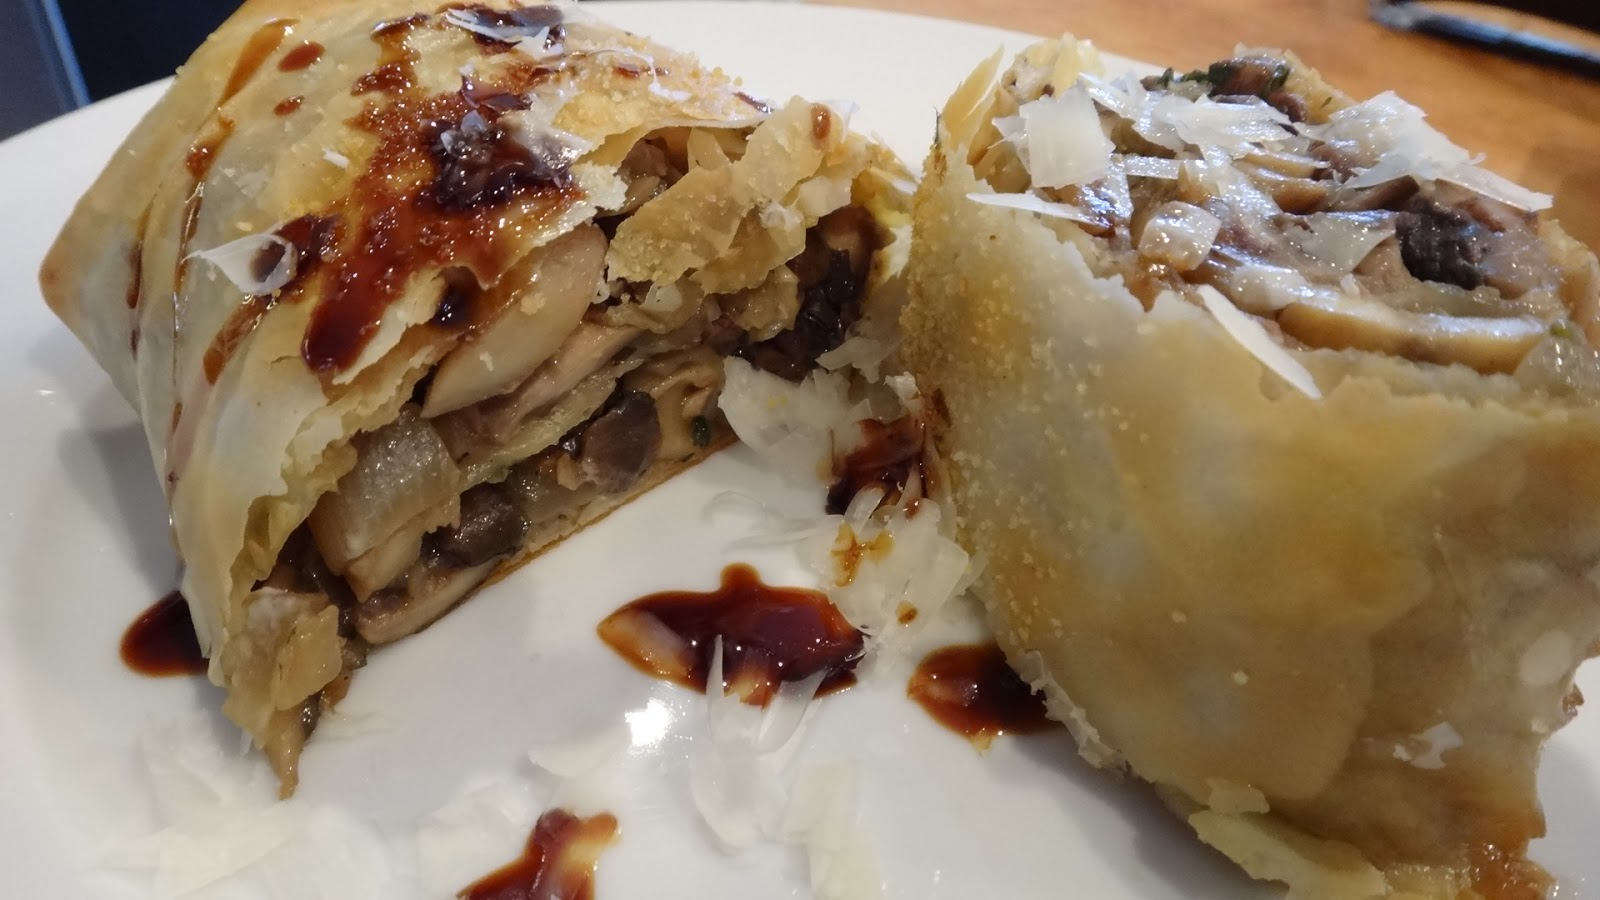 Mushroom Strudel « I WANT TO COOK THAT